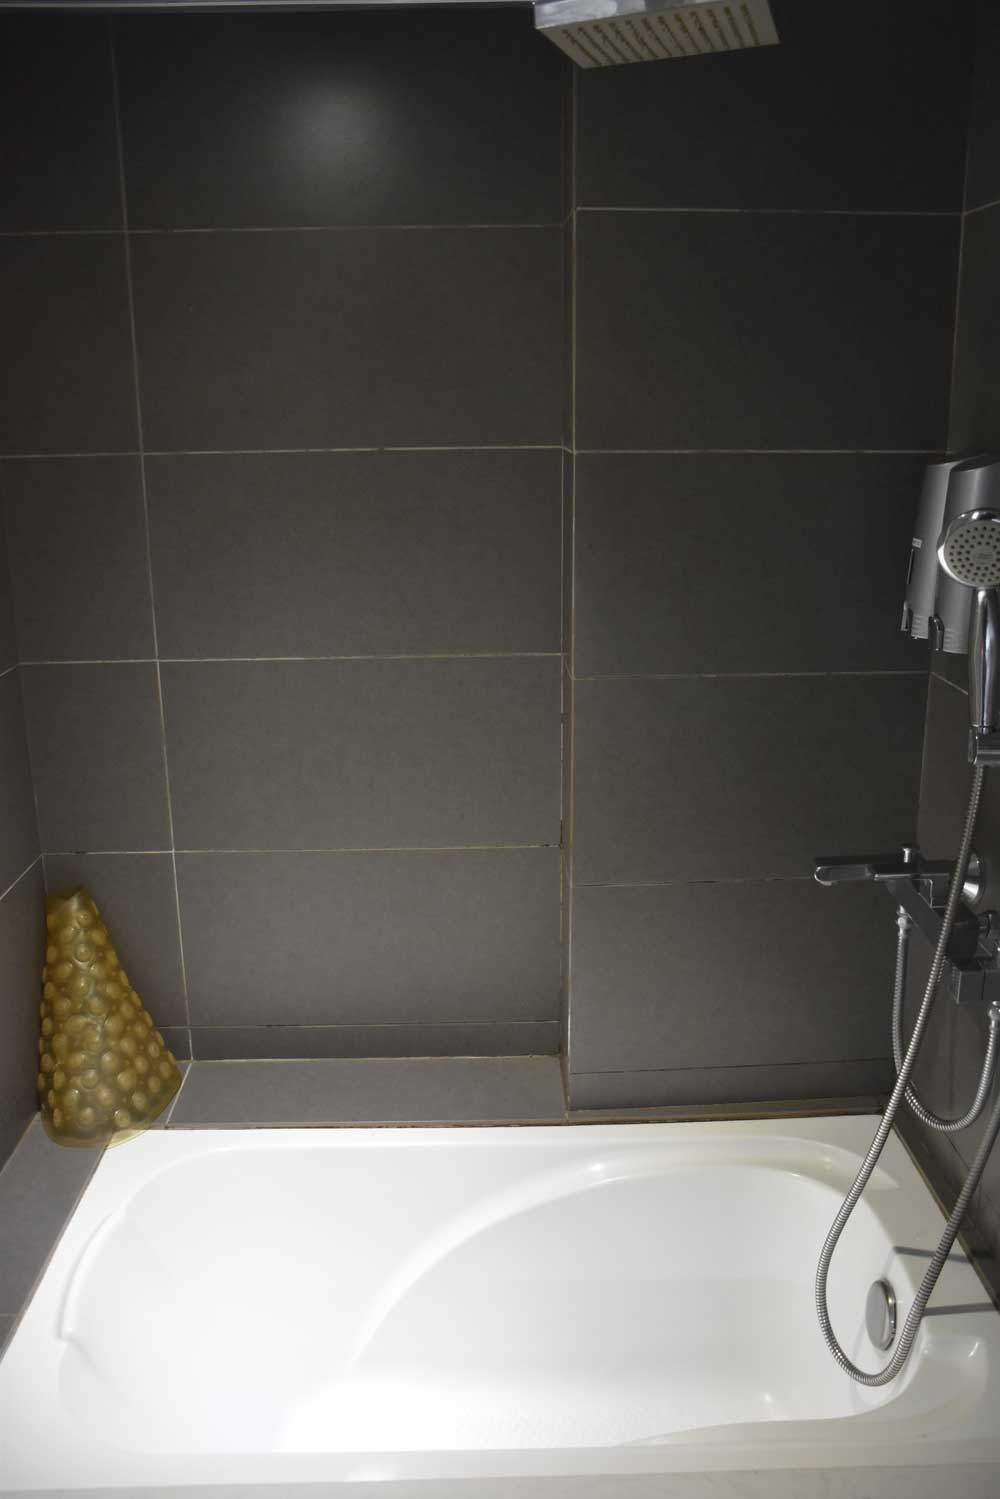 Five Footway Inn Macau bathtub